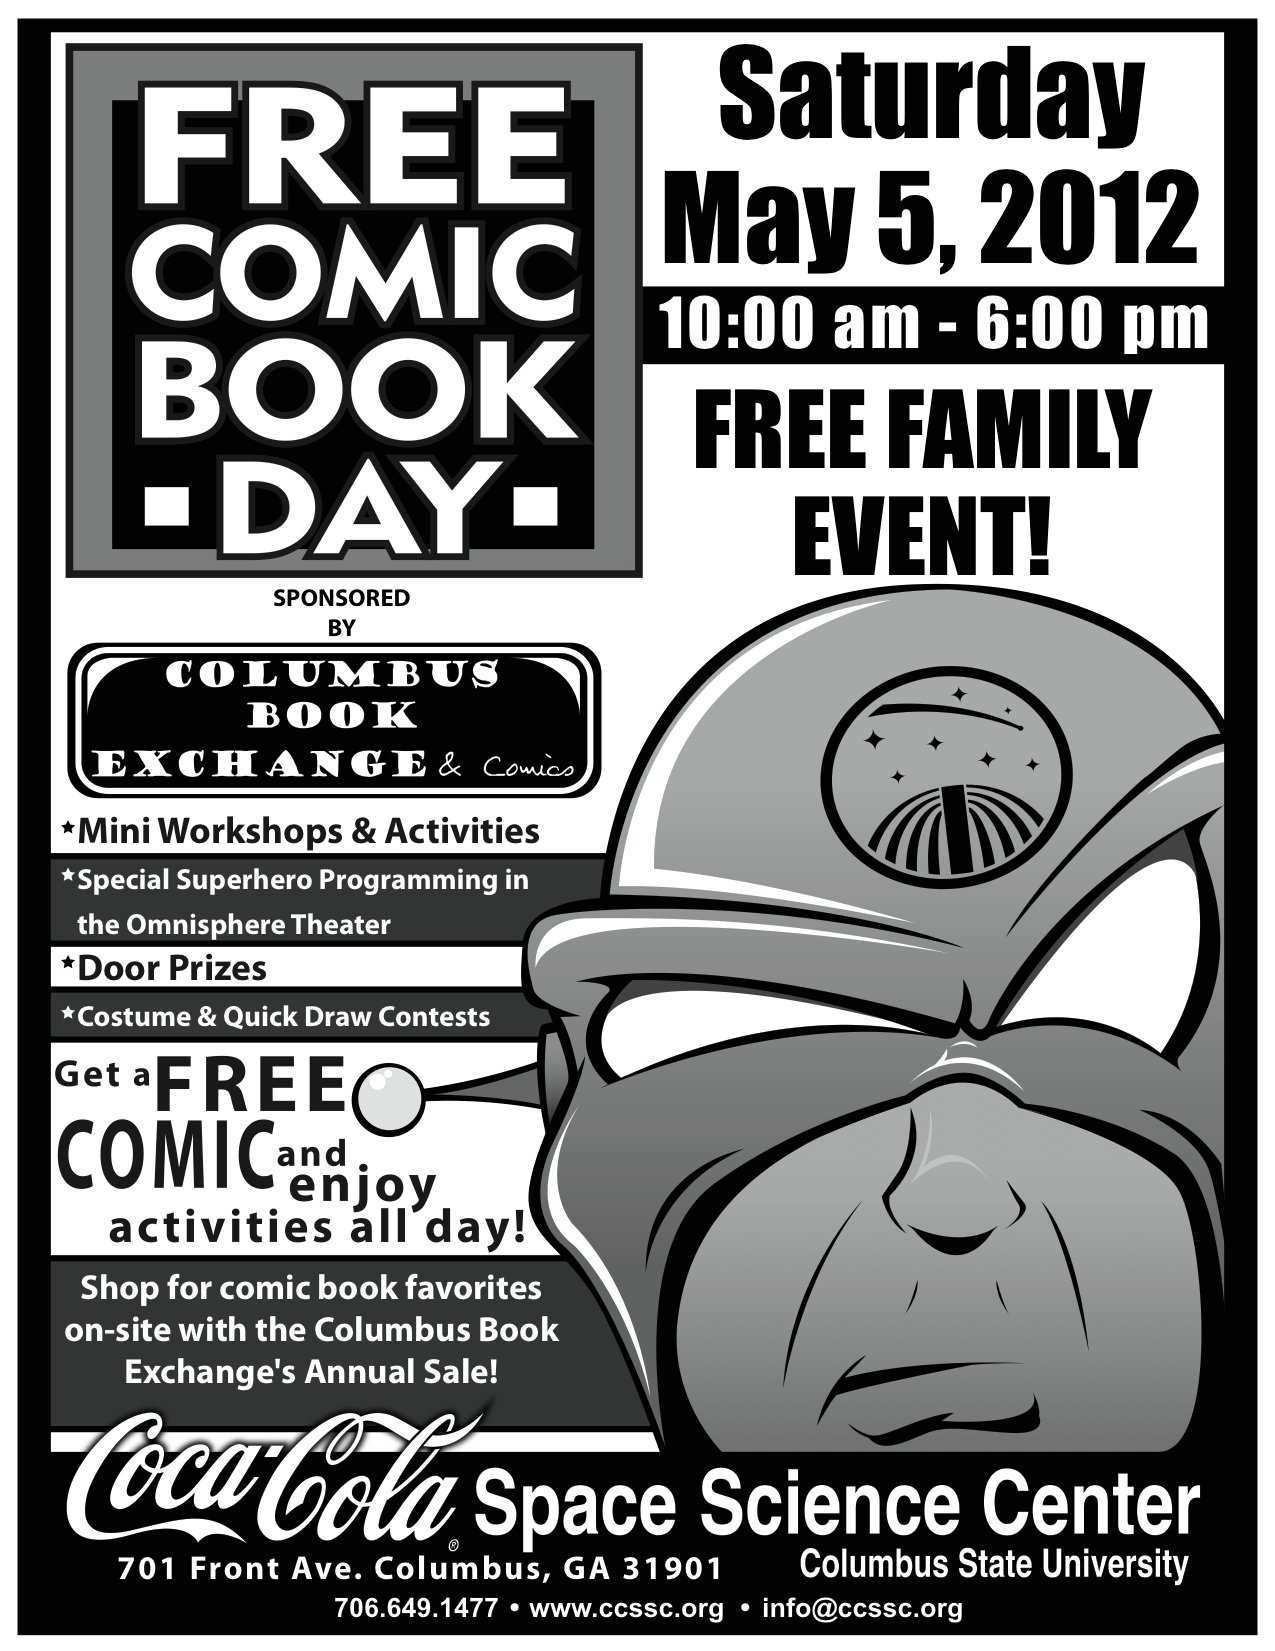 Free Comic Book Day at the CCSSC